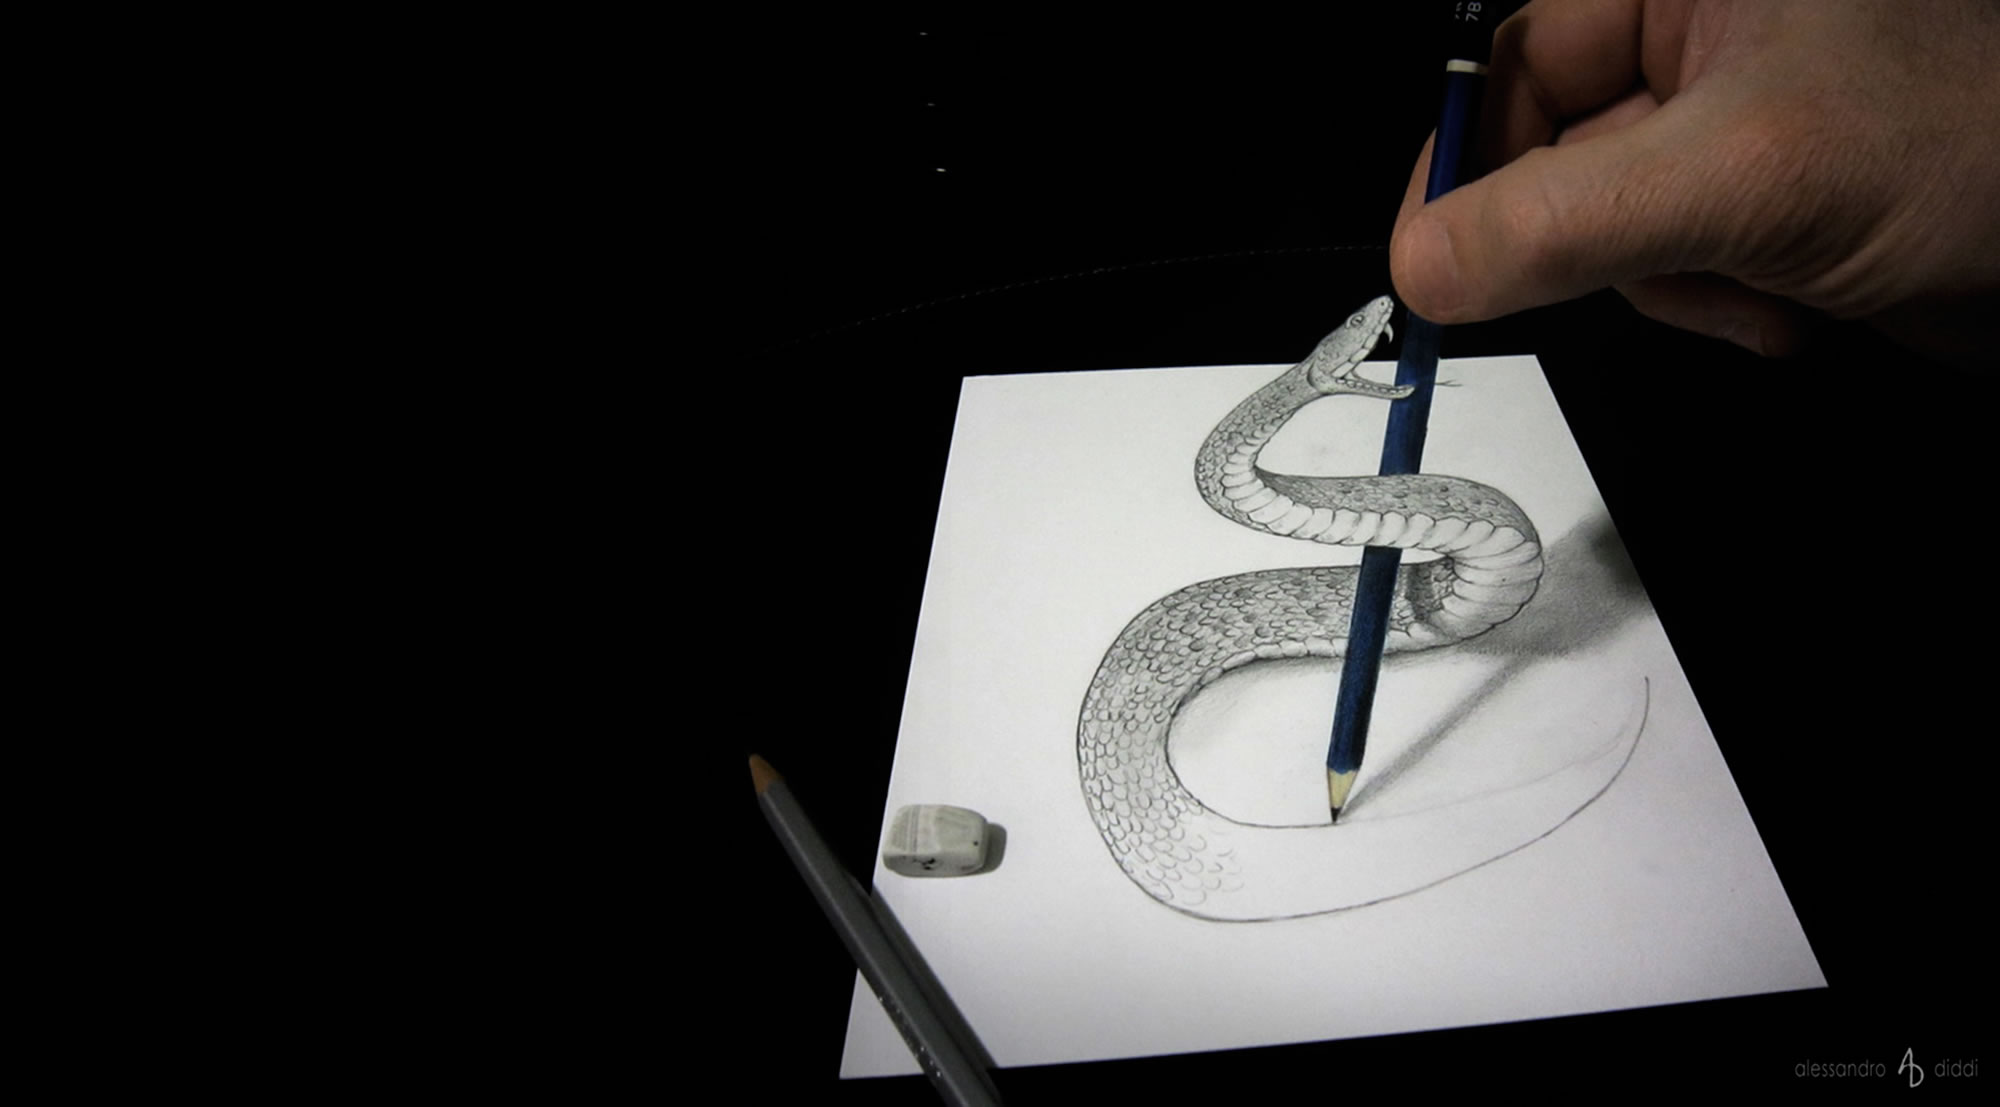 3d snake drawing by alessandro diddi